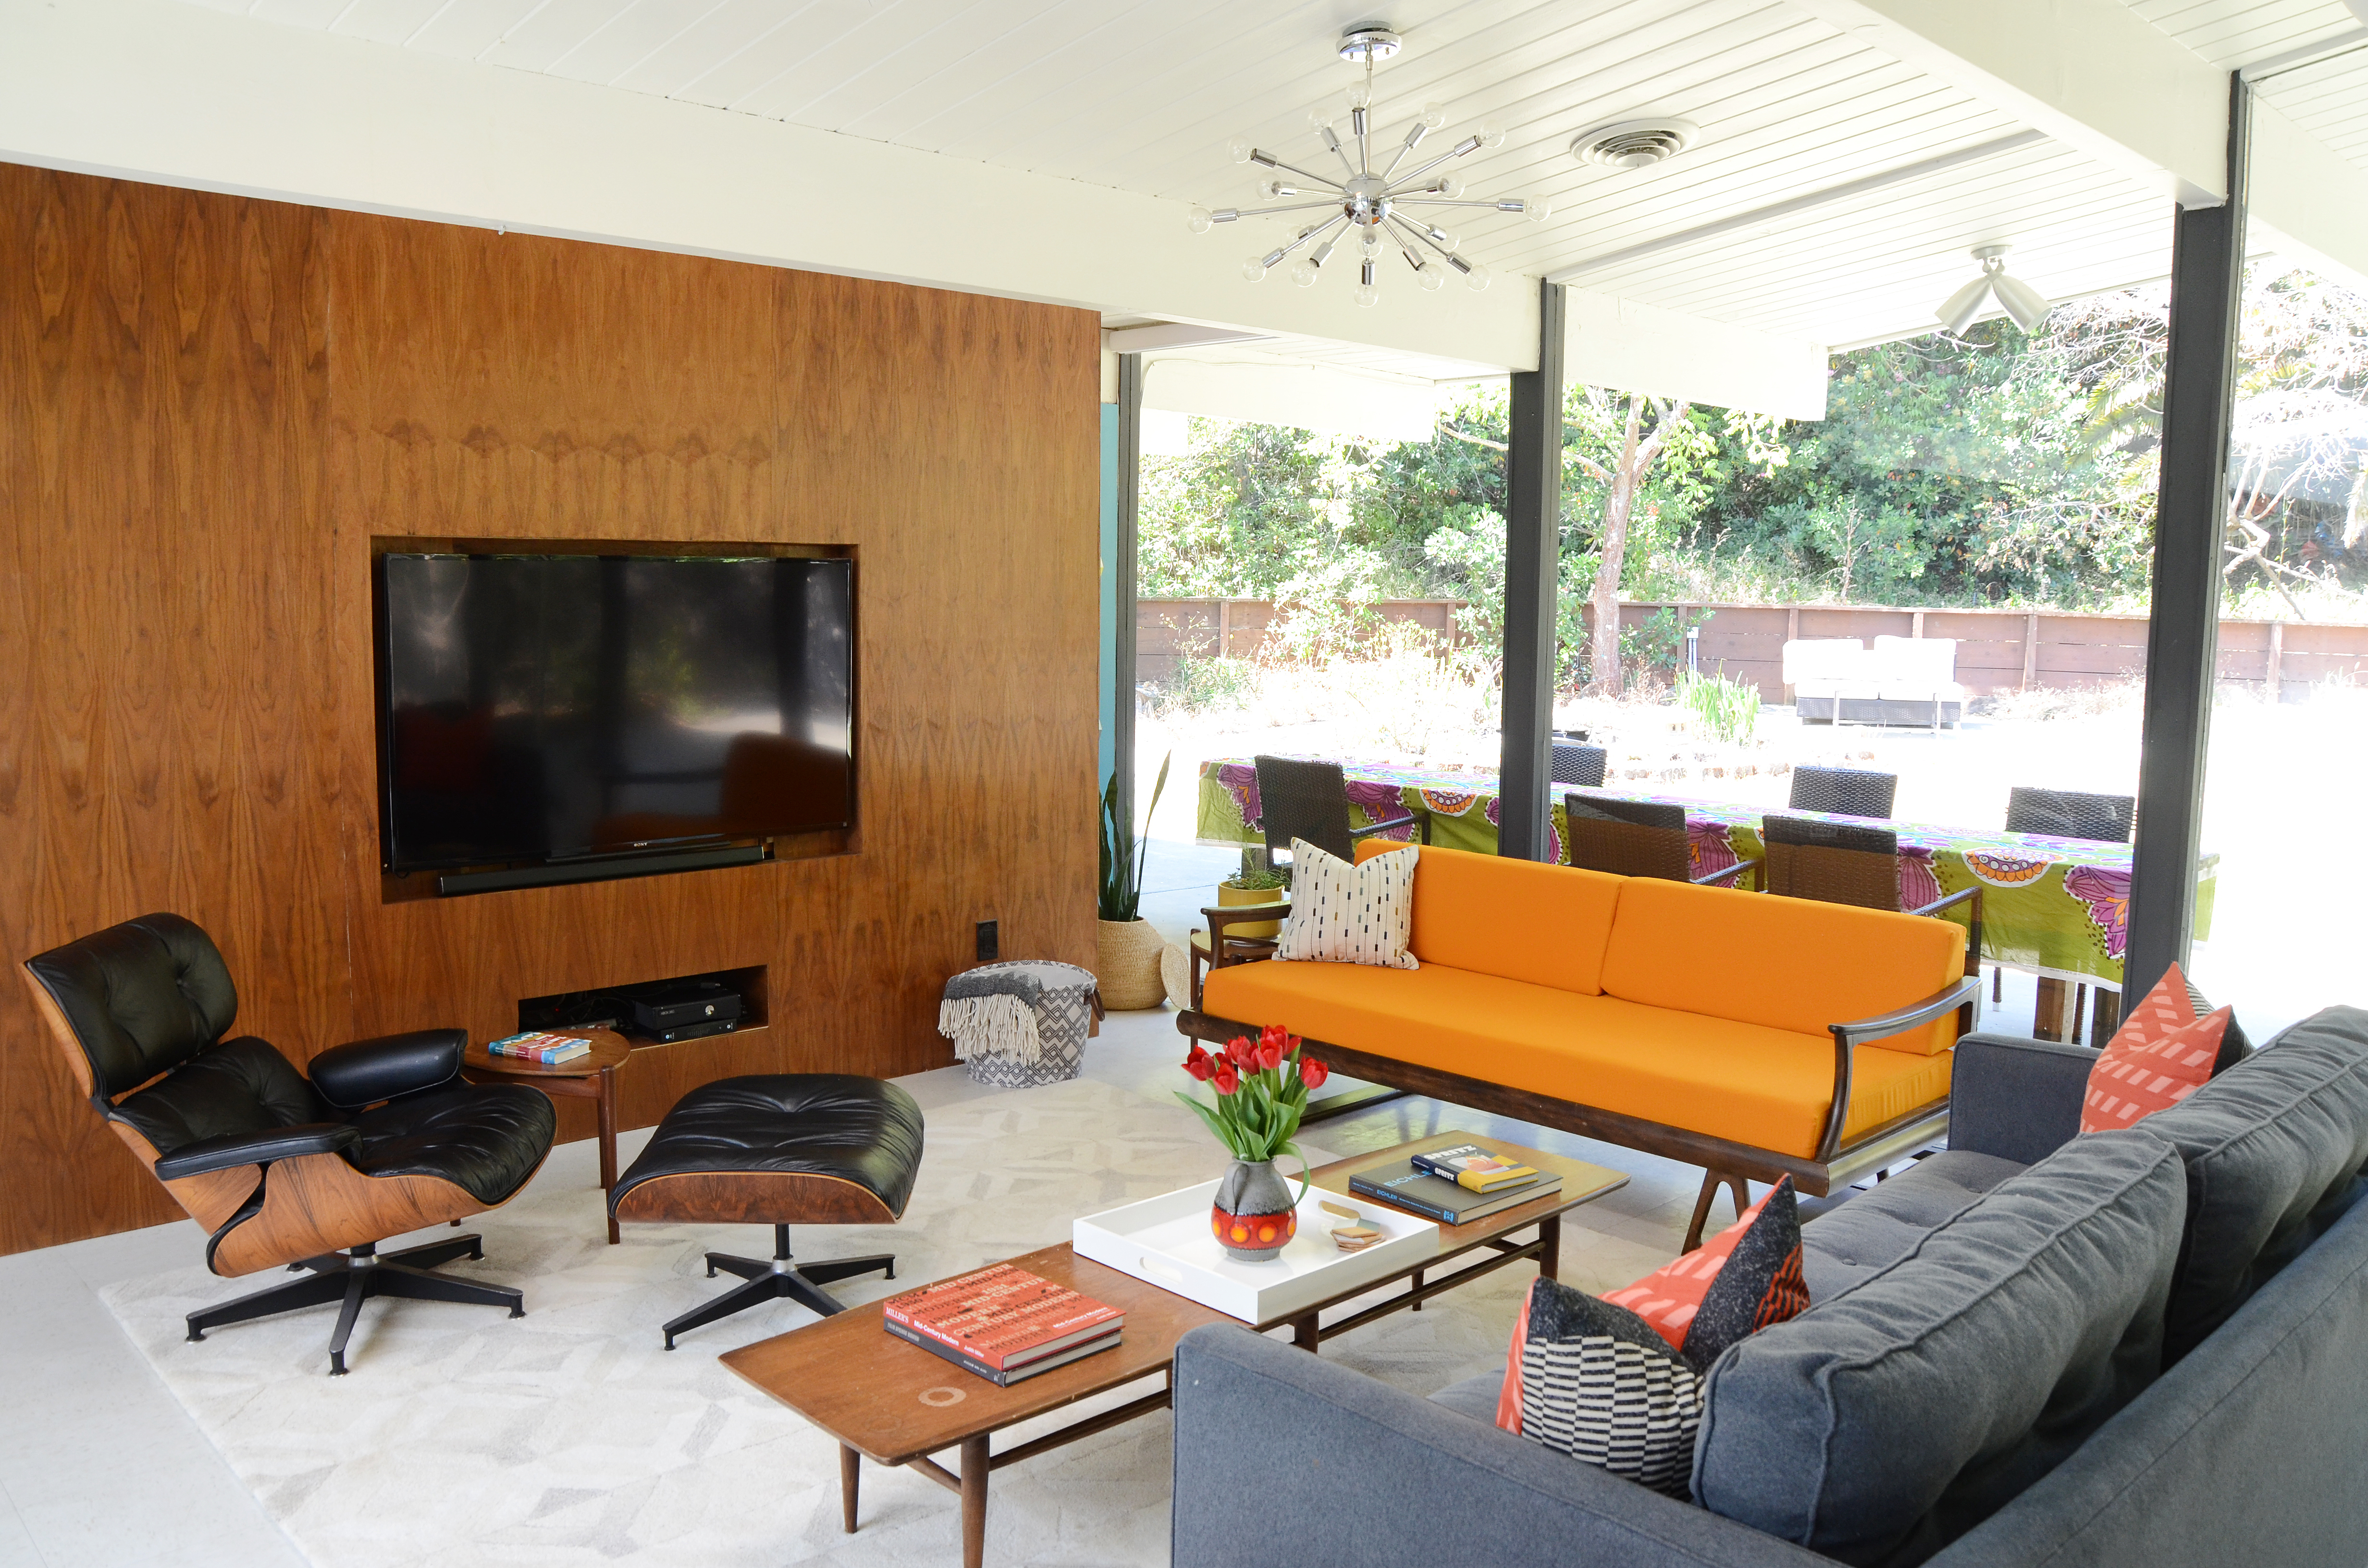 The Basics Of Mid Century Modern Design | Apartment Therapy